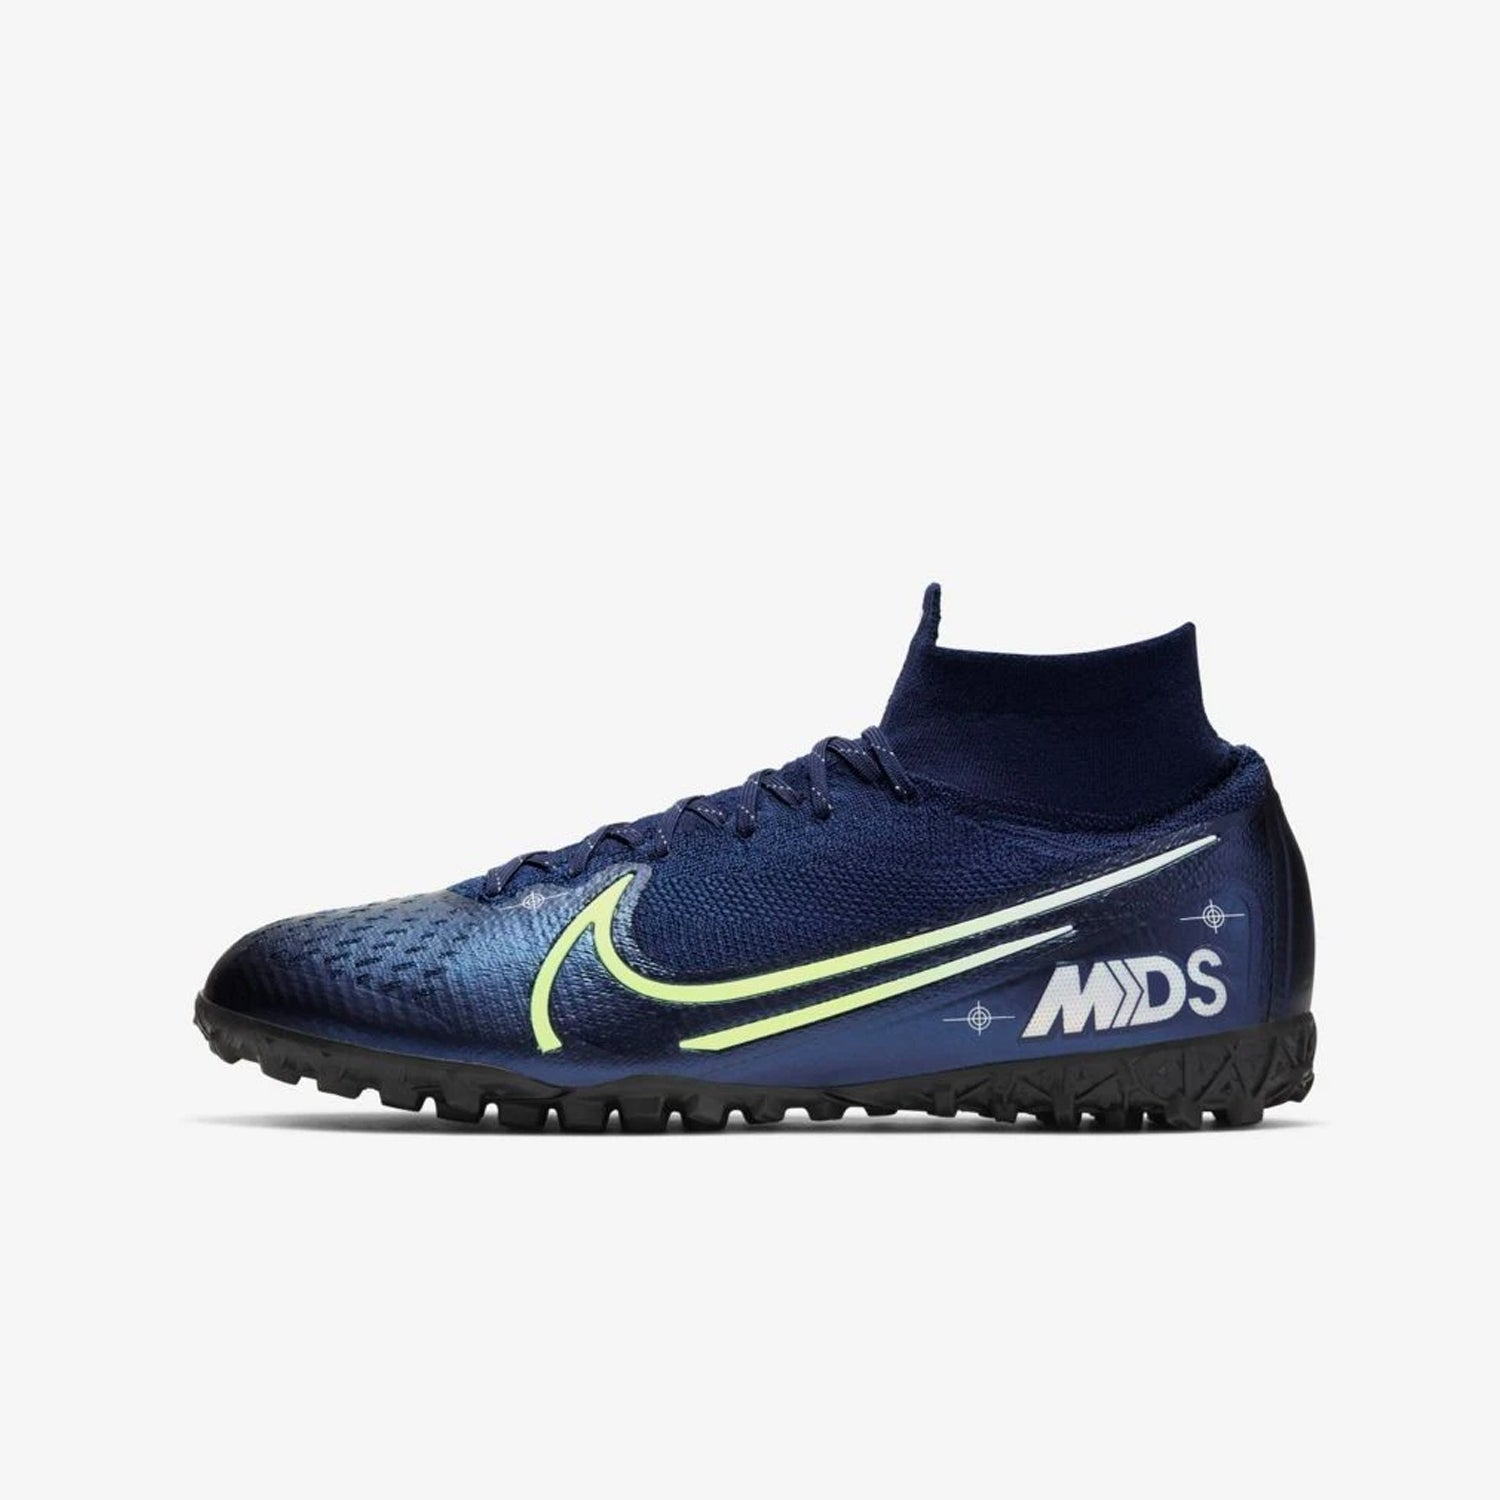 Men's Mercurial Superfly 7 Elite MDS TF Turf Soccer Shoes